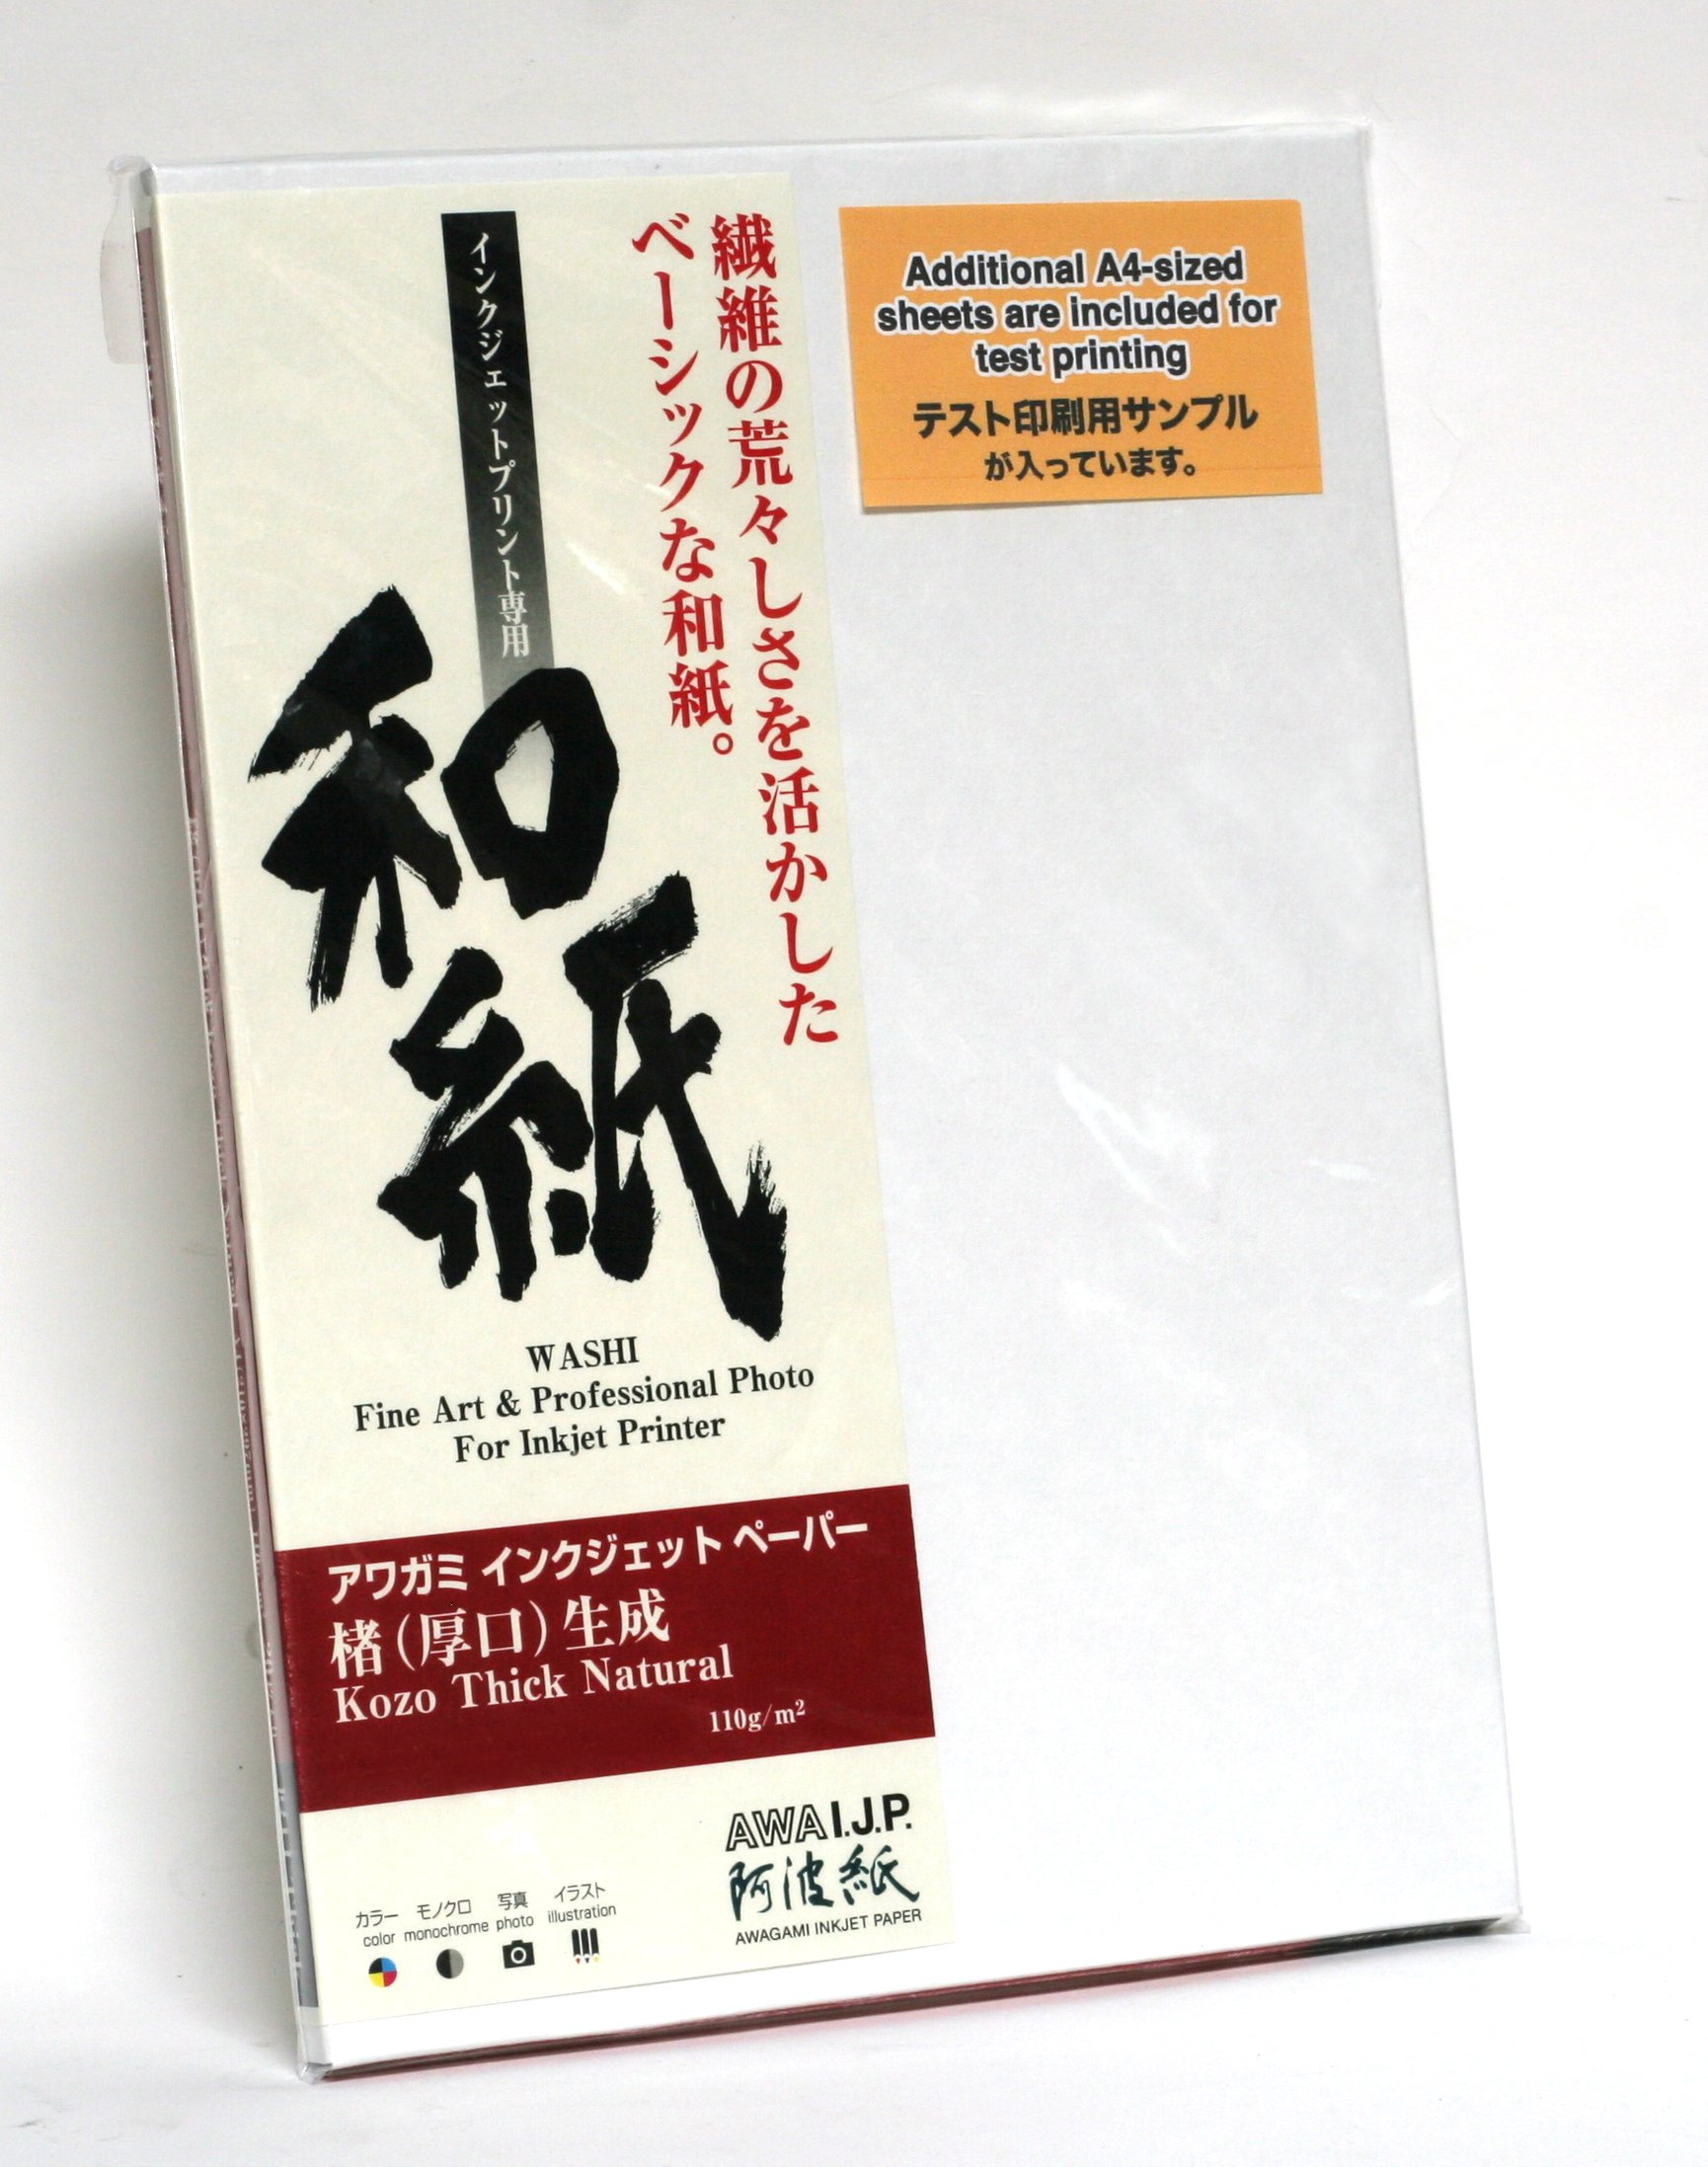 Awagami Kozo Thick Natural Fine Art Inkjet Paper, 110gsm A4 (8.27'' x 11.69'') 20 Sheets by Awagami